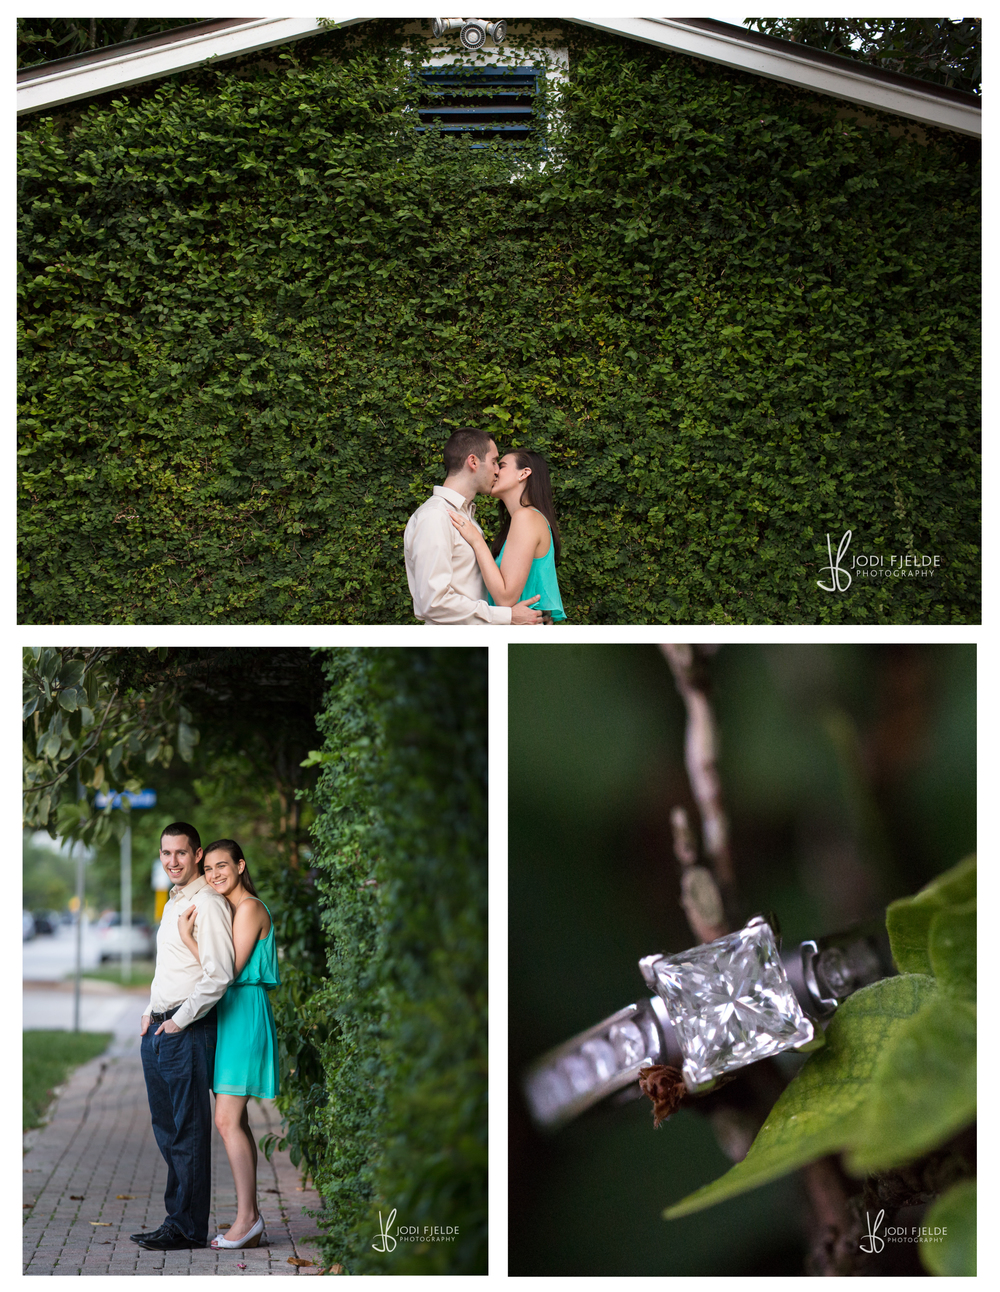 Delray_BEach_Sundy_HouseFlorida_engagement_E-session_Allison_&_Matt_photography_jodi_Fjelde_photography_3.jpg